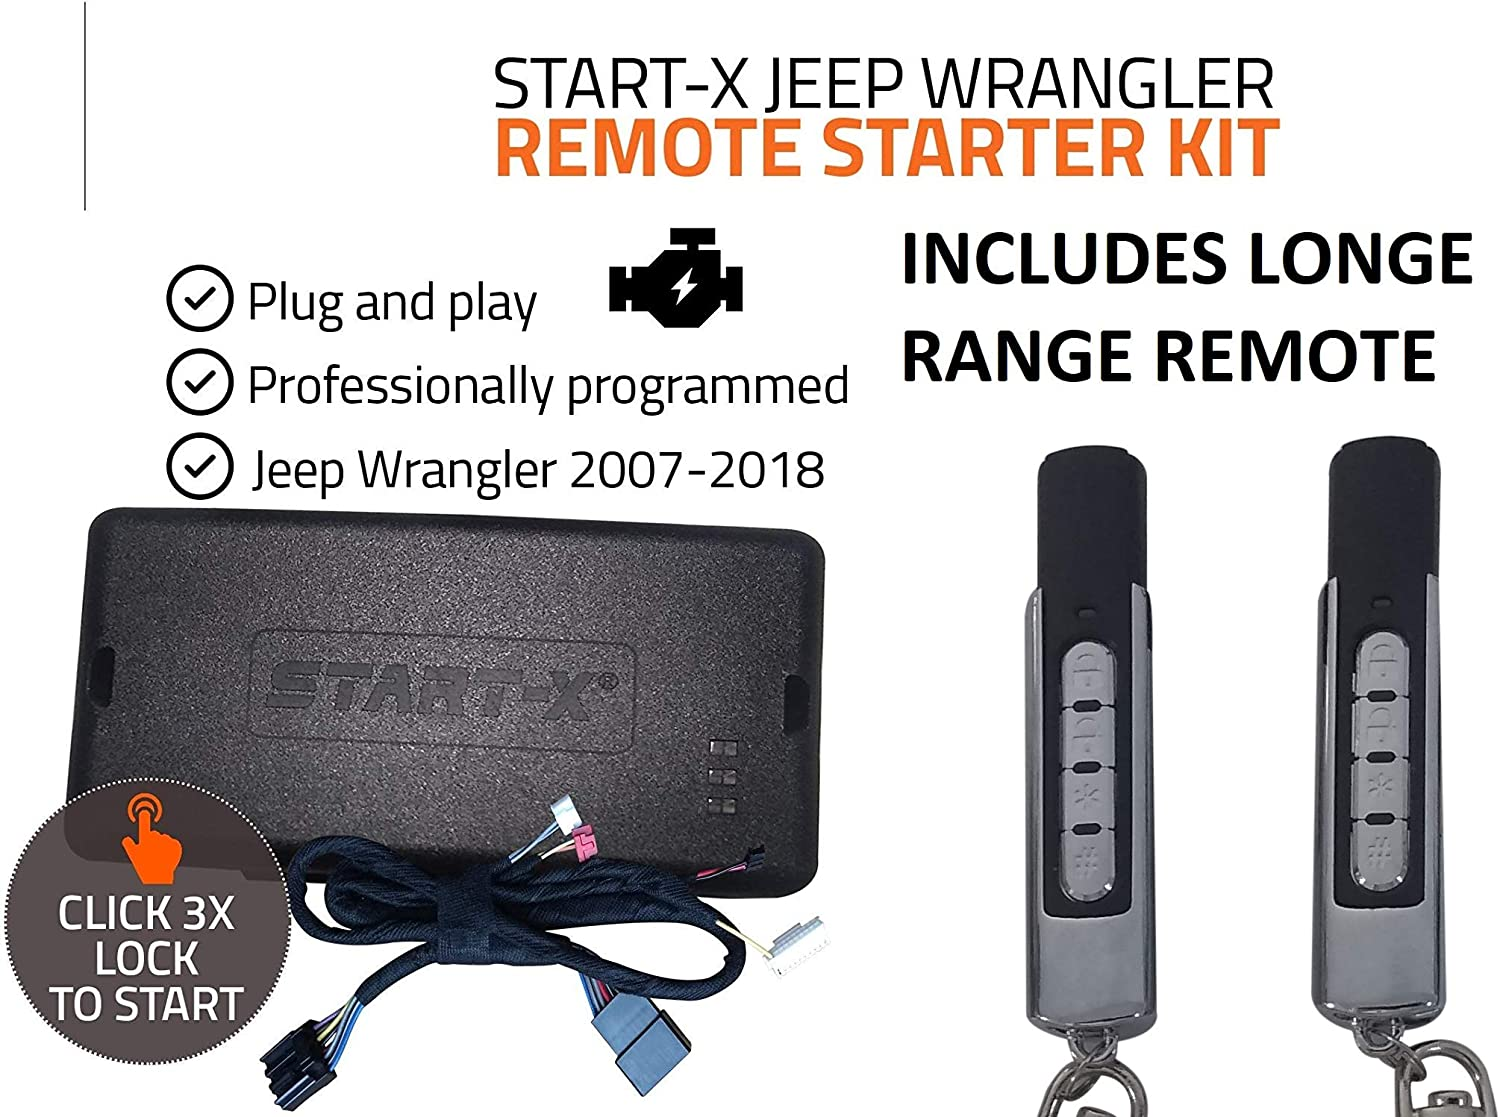 2018-2020 Plug /& Play Start-X Remote Starter Kit for Jeep Wrangler /& Gladiator Push to Start 3X Lock to Remote Start All Trims 10 Minute Install